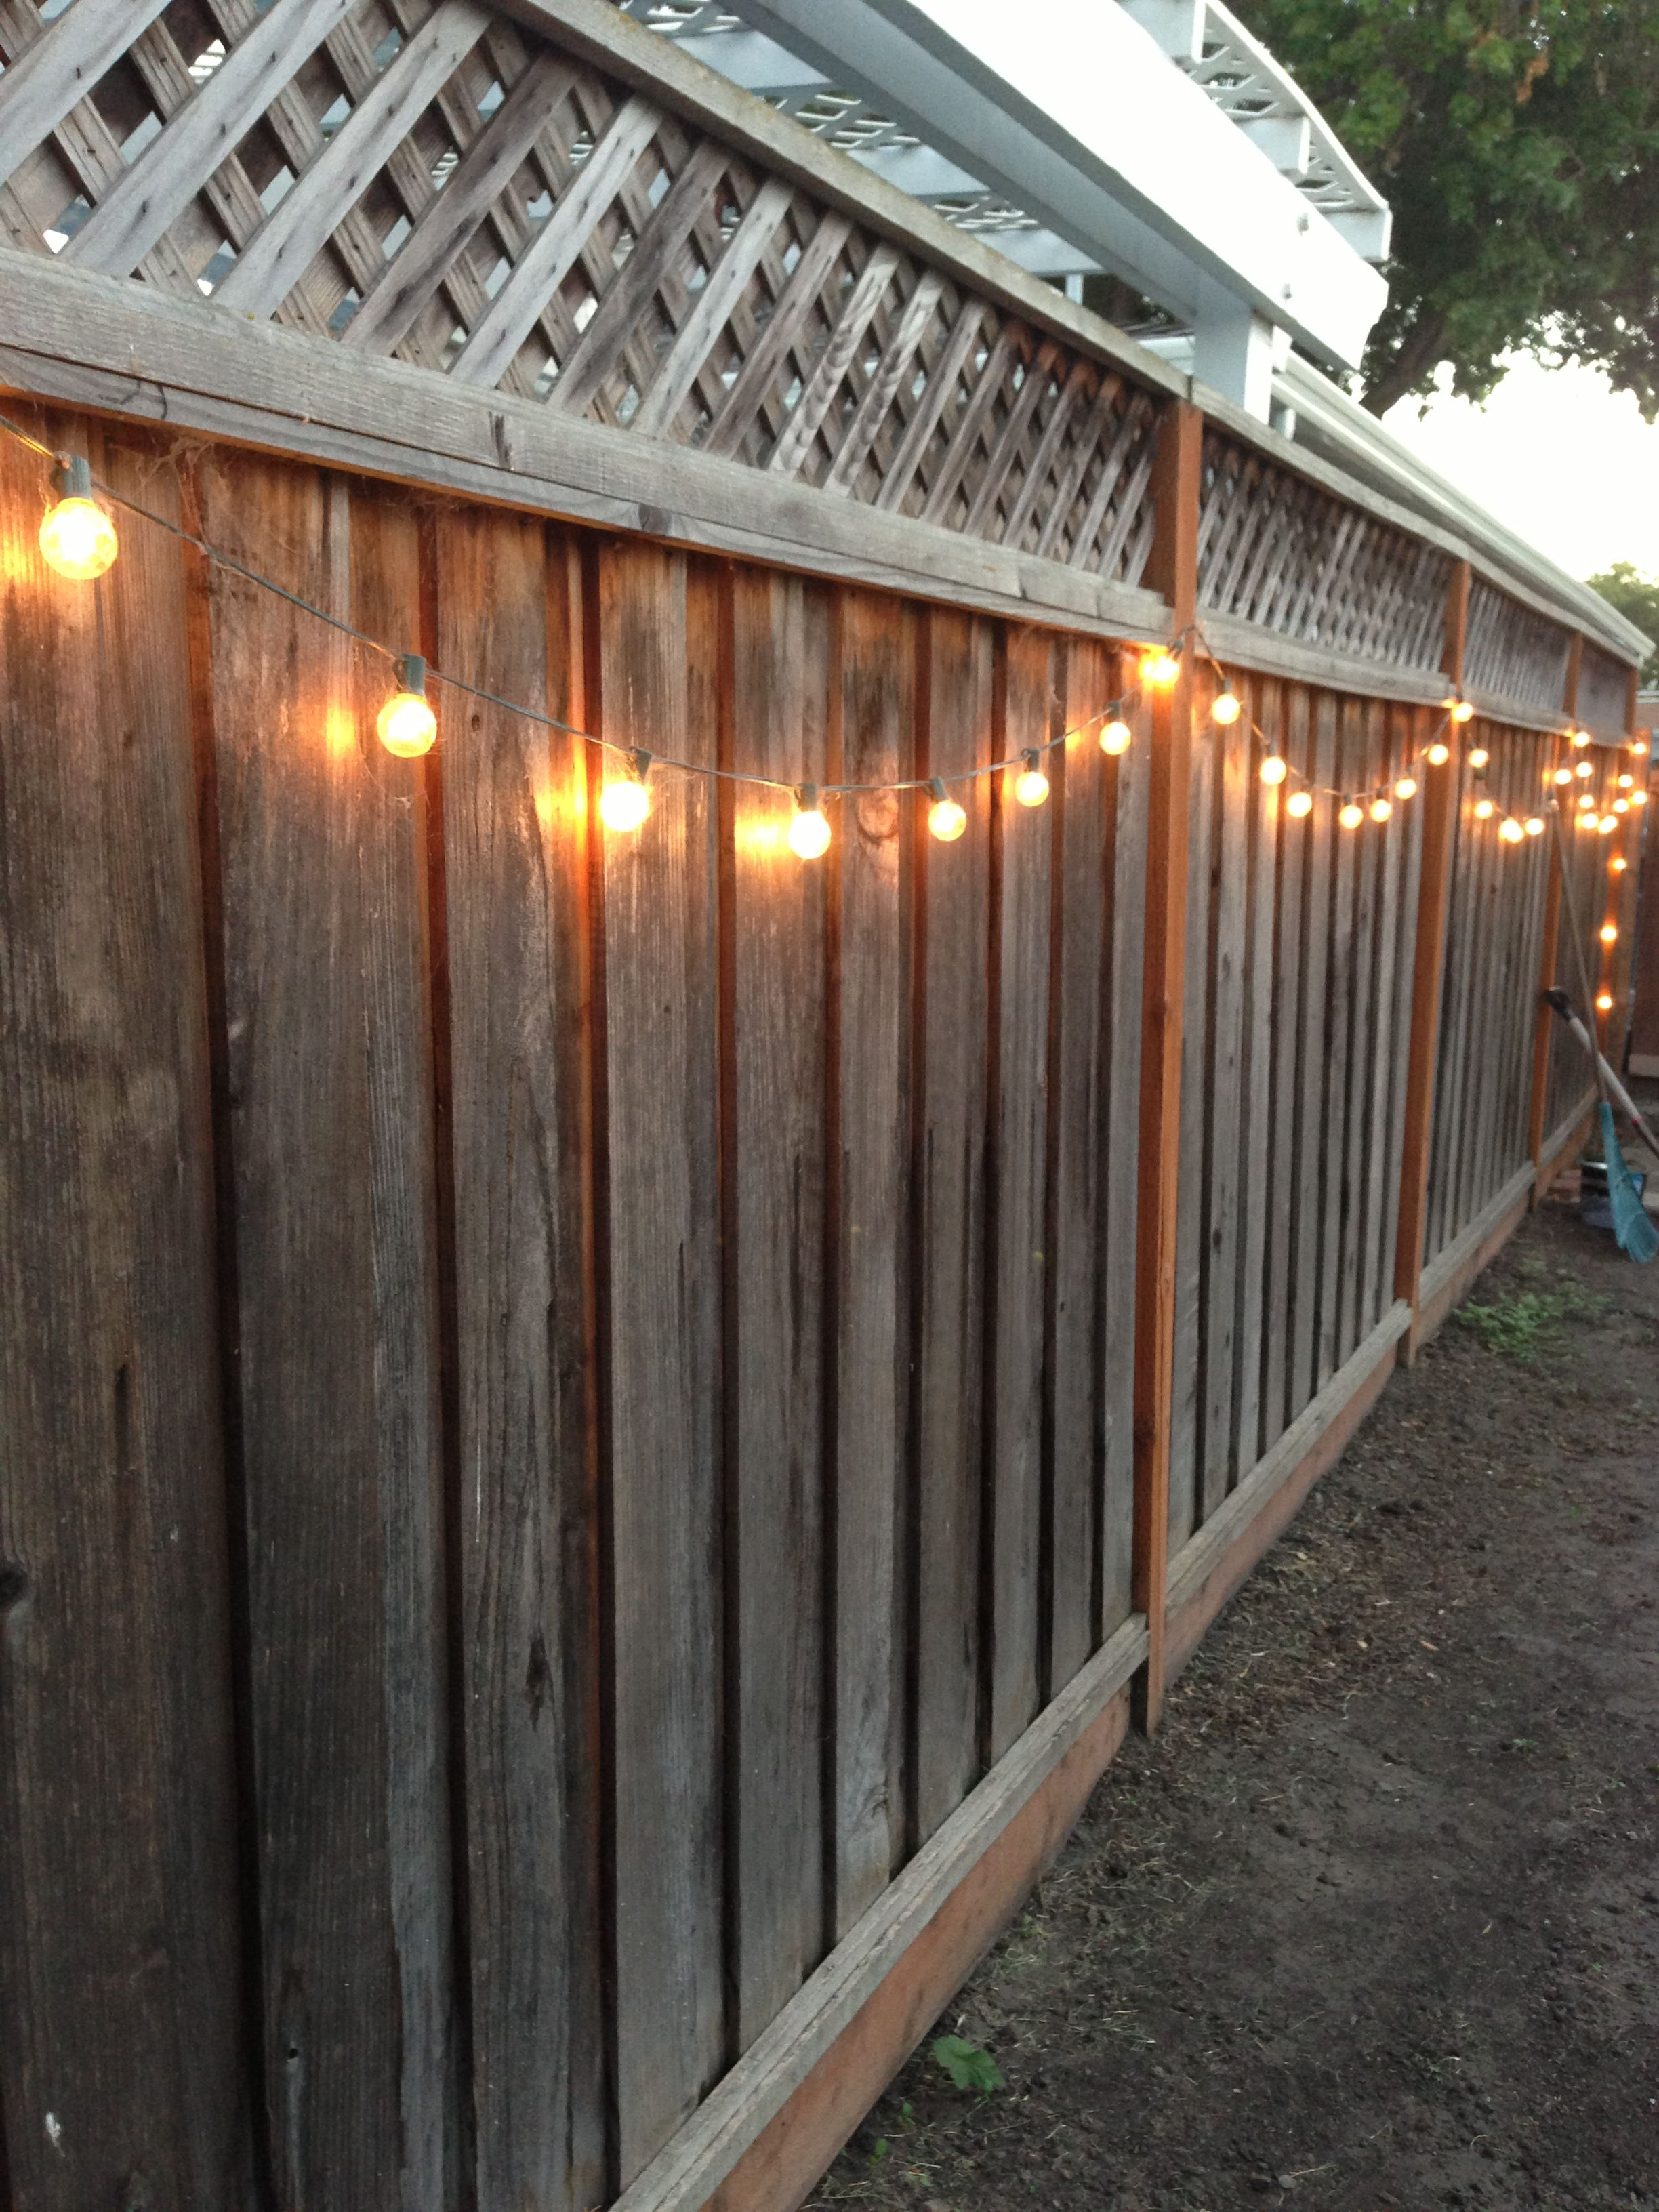 Outdoor String Lights On Fence : DIY backyard lighting. Hang lights on your fence! DIY Pinterest Fences, Backyard and Lights